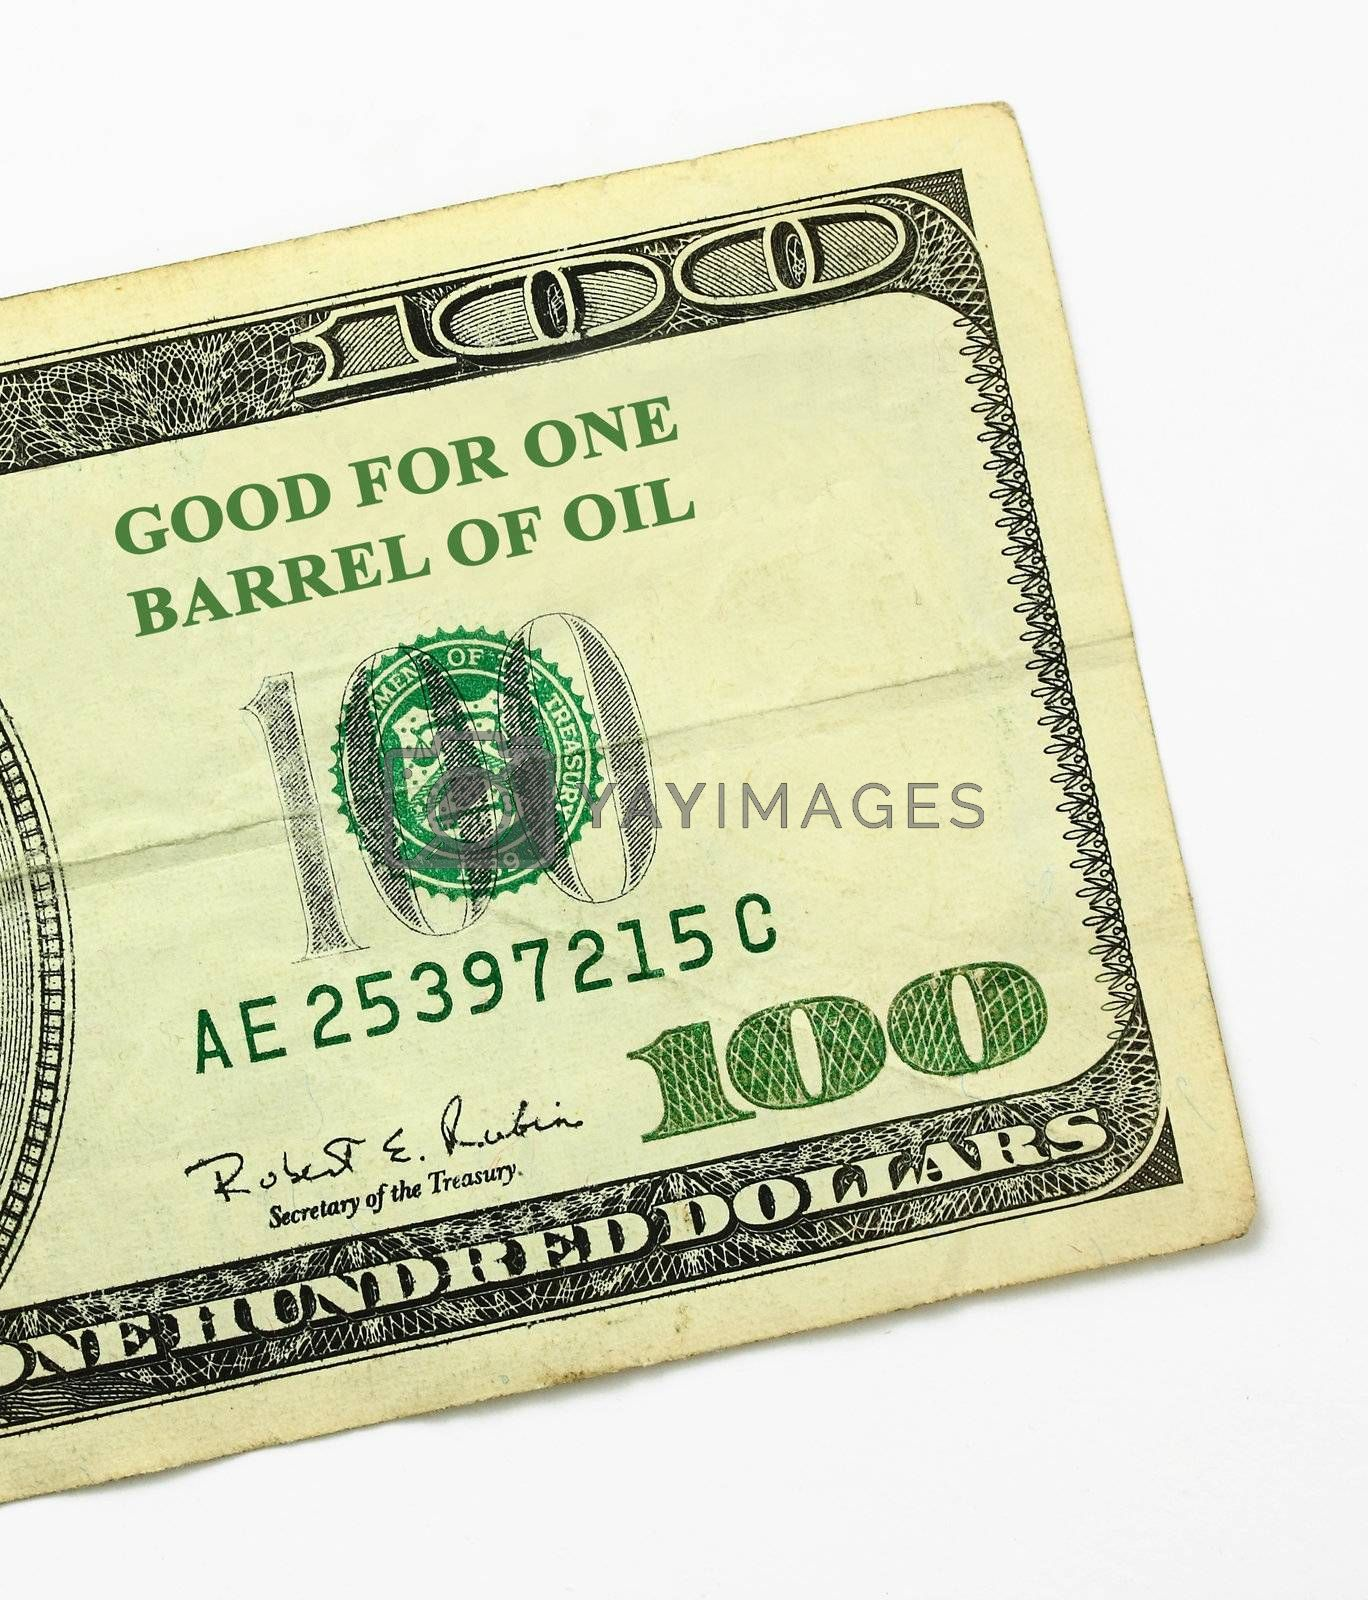 $100 bill and the price of oil.